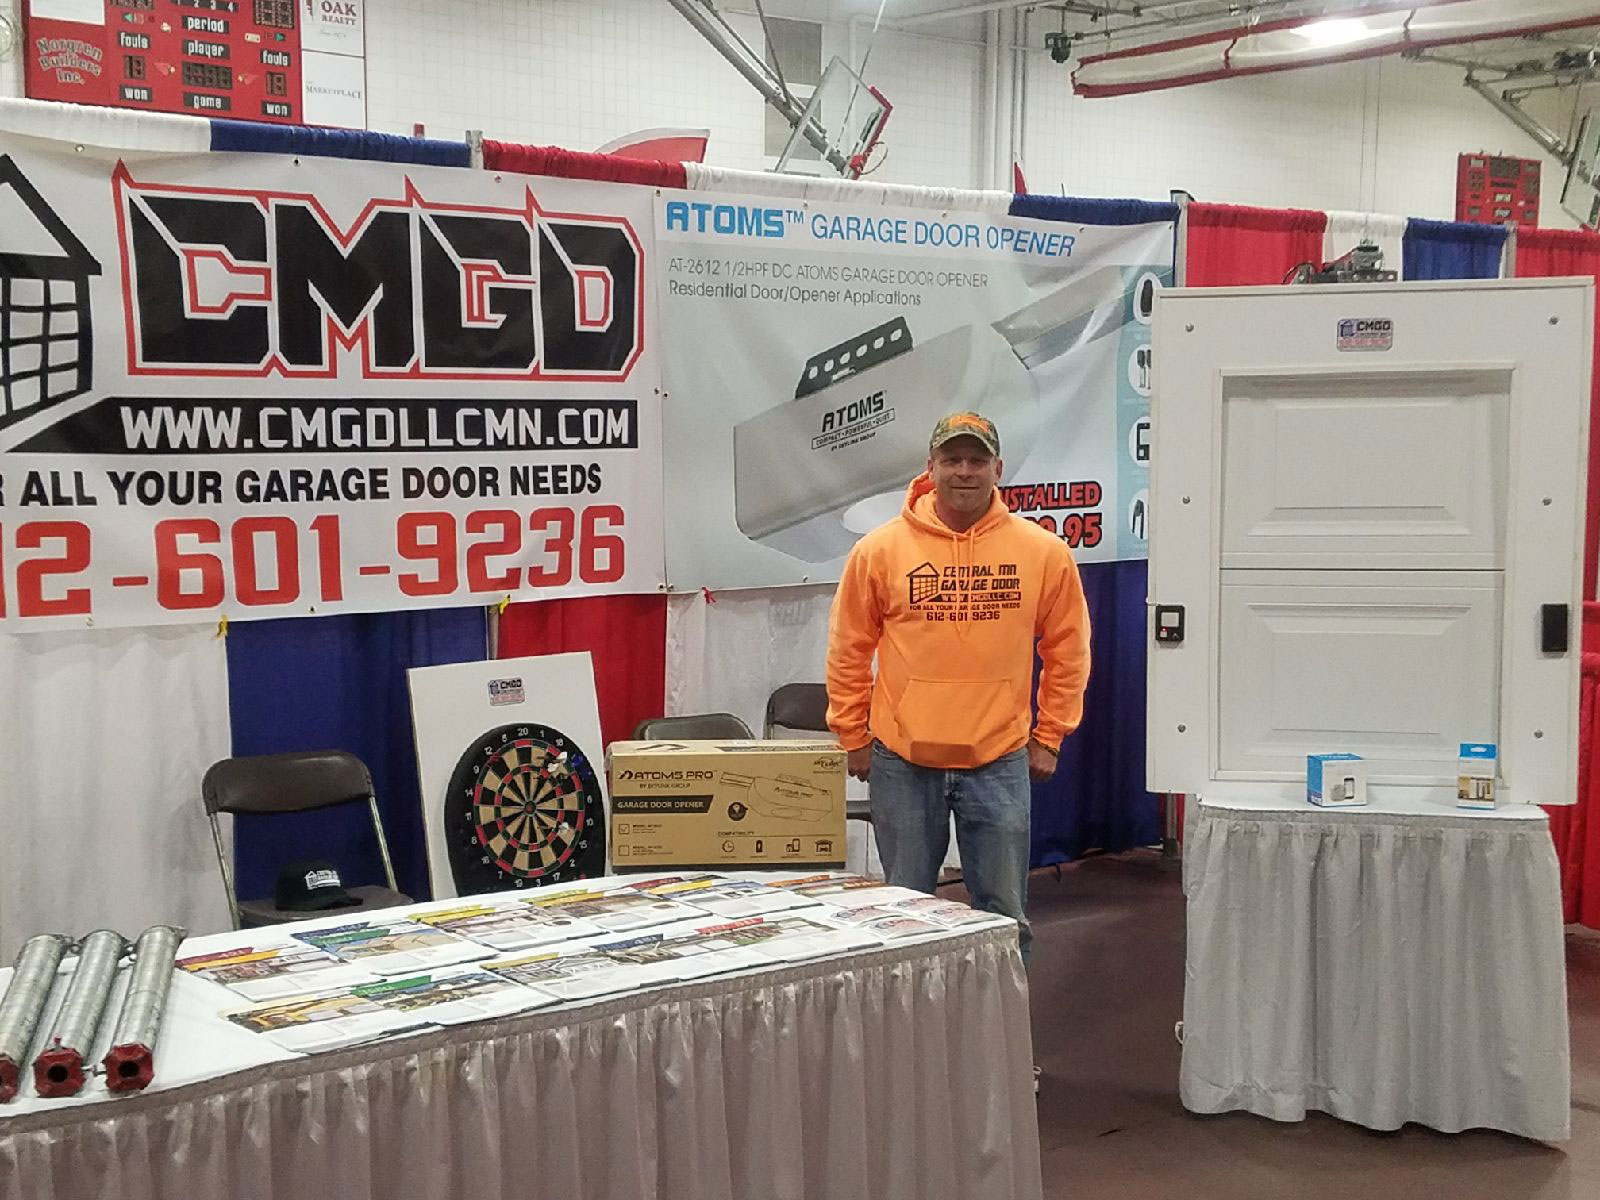 Picture of CMGD member at an Expo